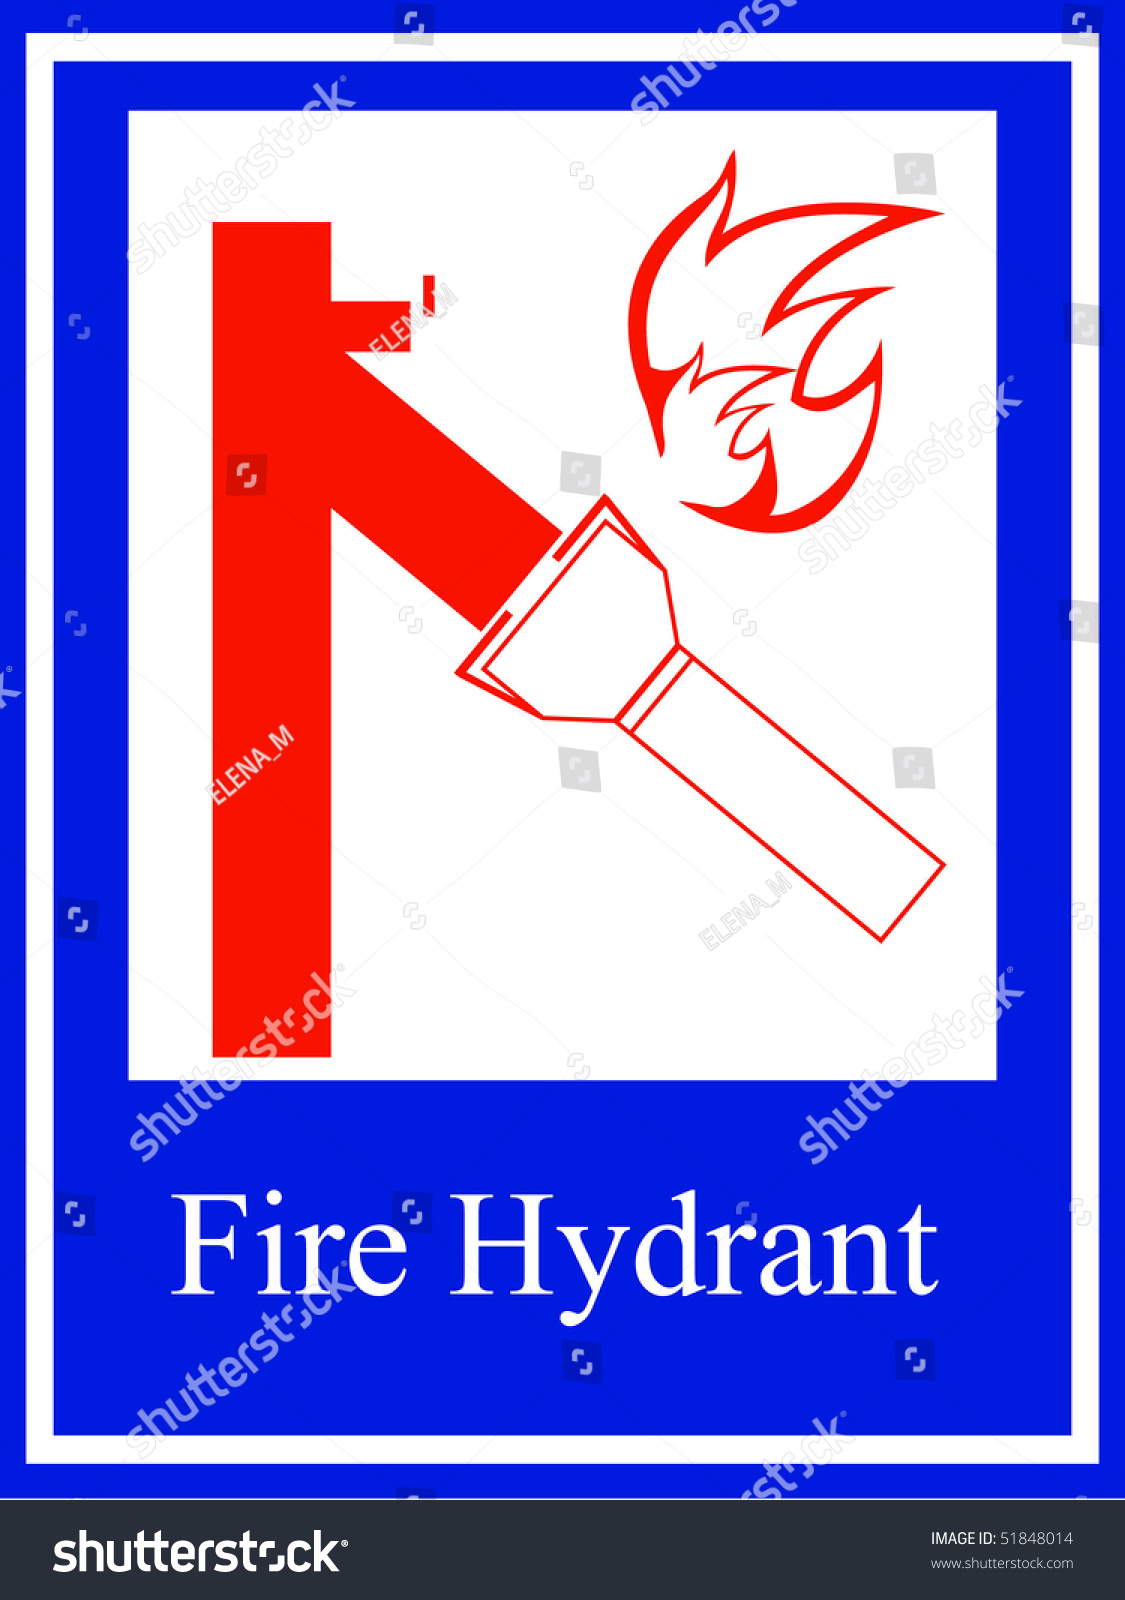 Fire Hydrant Symbol Stock Vector Royalty Free 51848014 Shutterstock